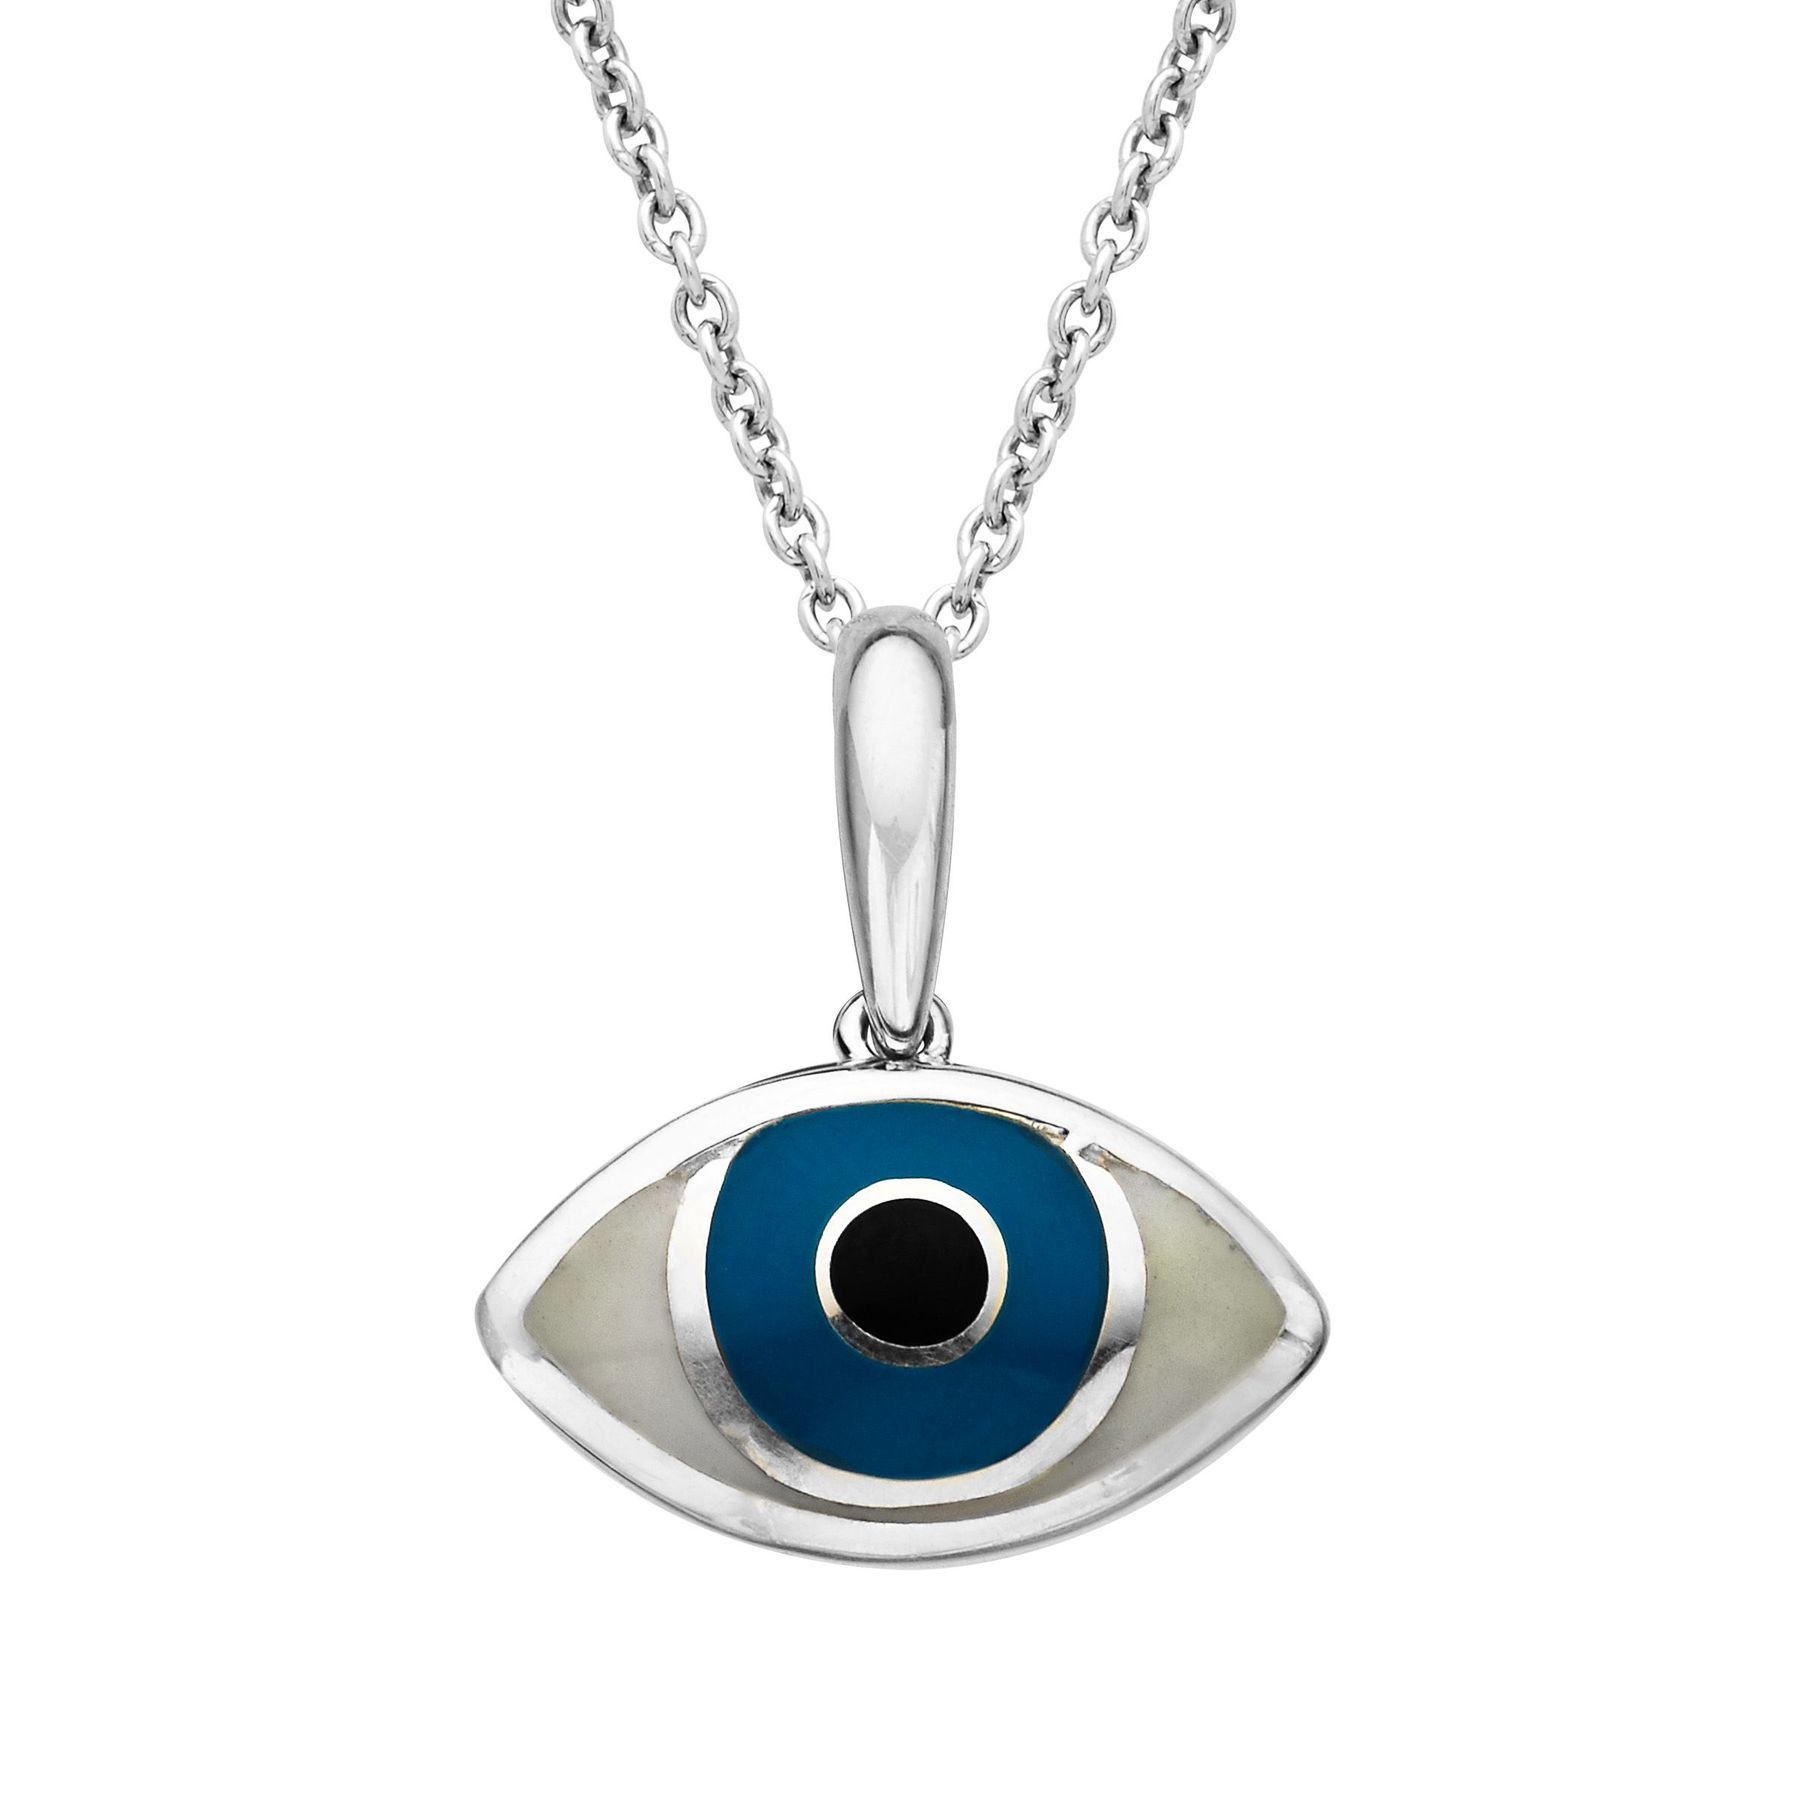 products pendant rg necklace maar jewellery eye dora bj